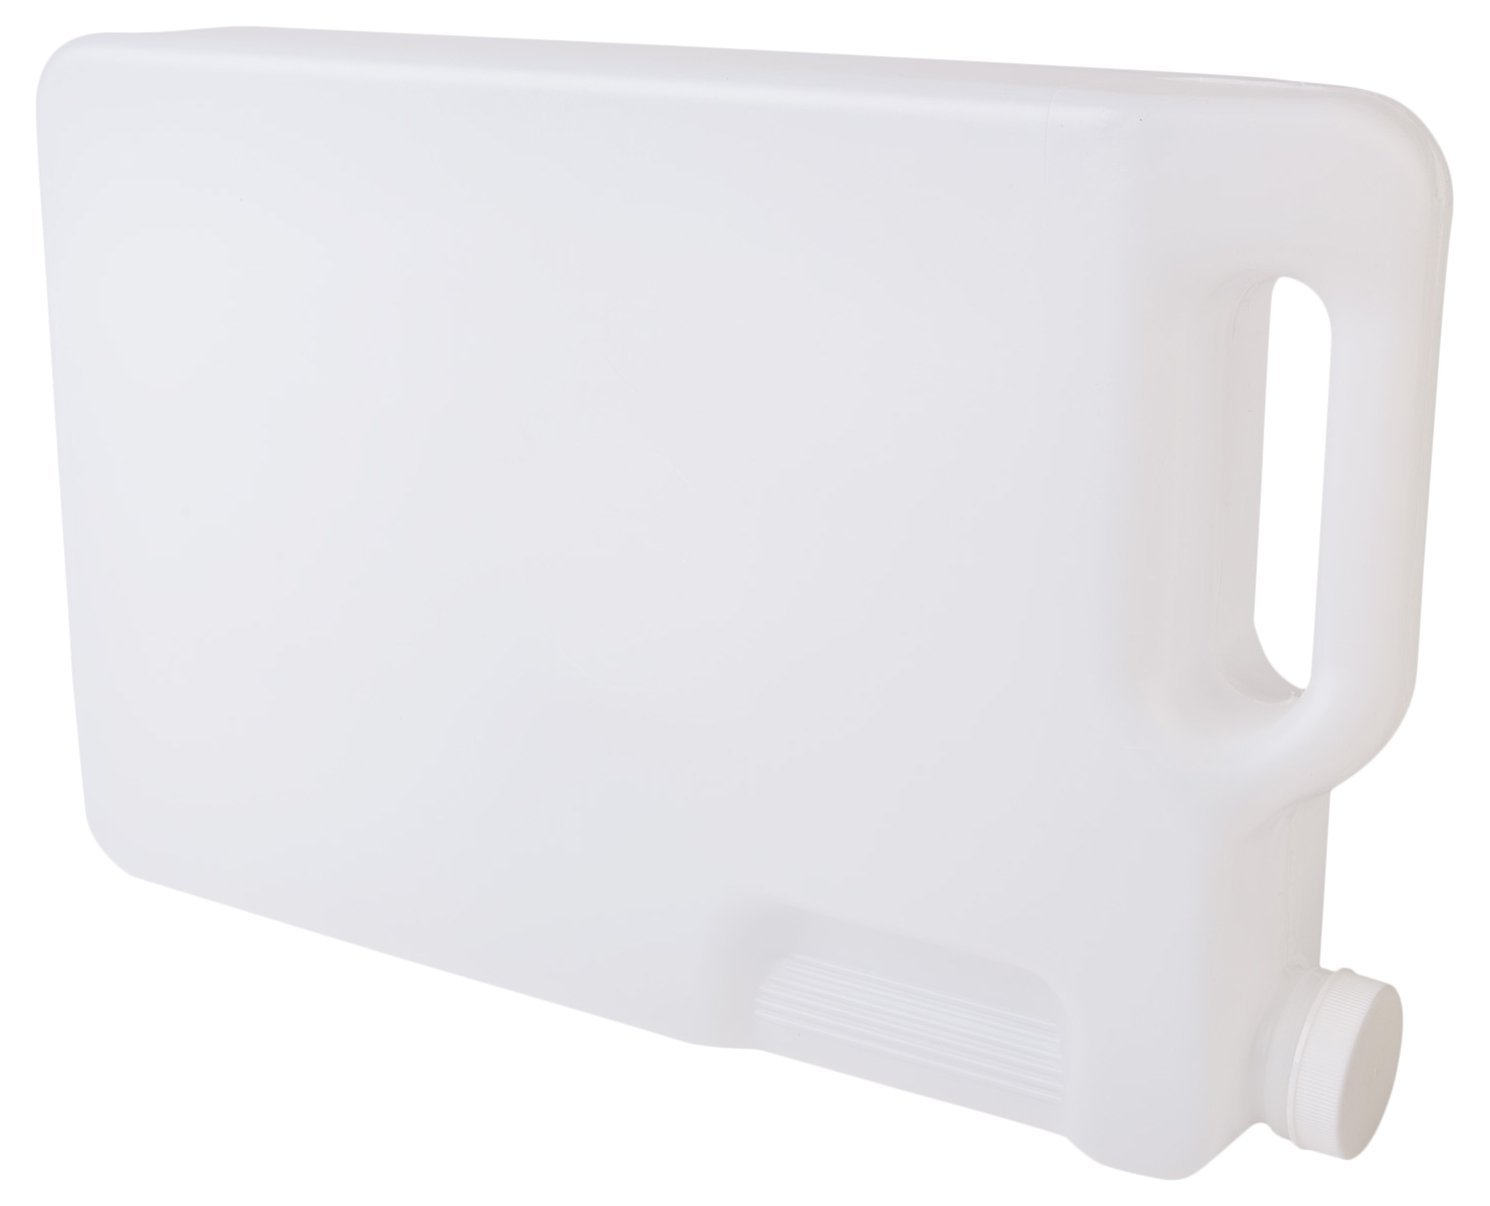 Hudson Exchange 5 Liter Hedpak Container with Cap, HDPE, Natural, 4 Pack